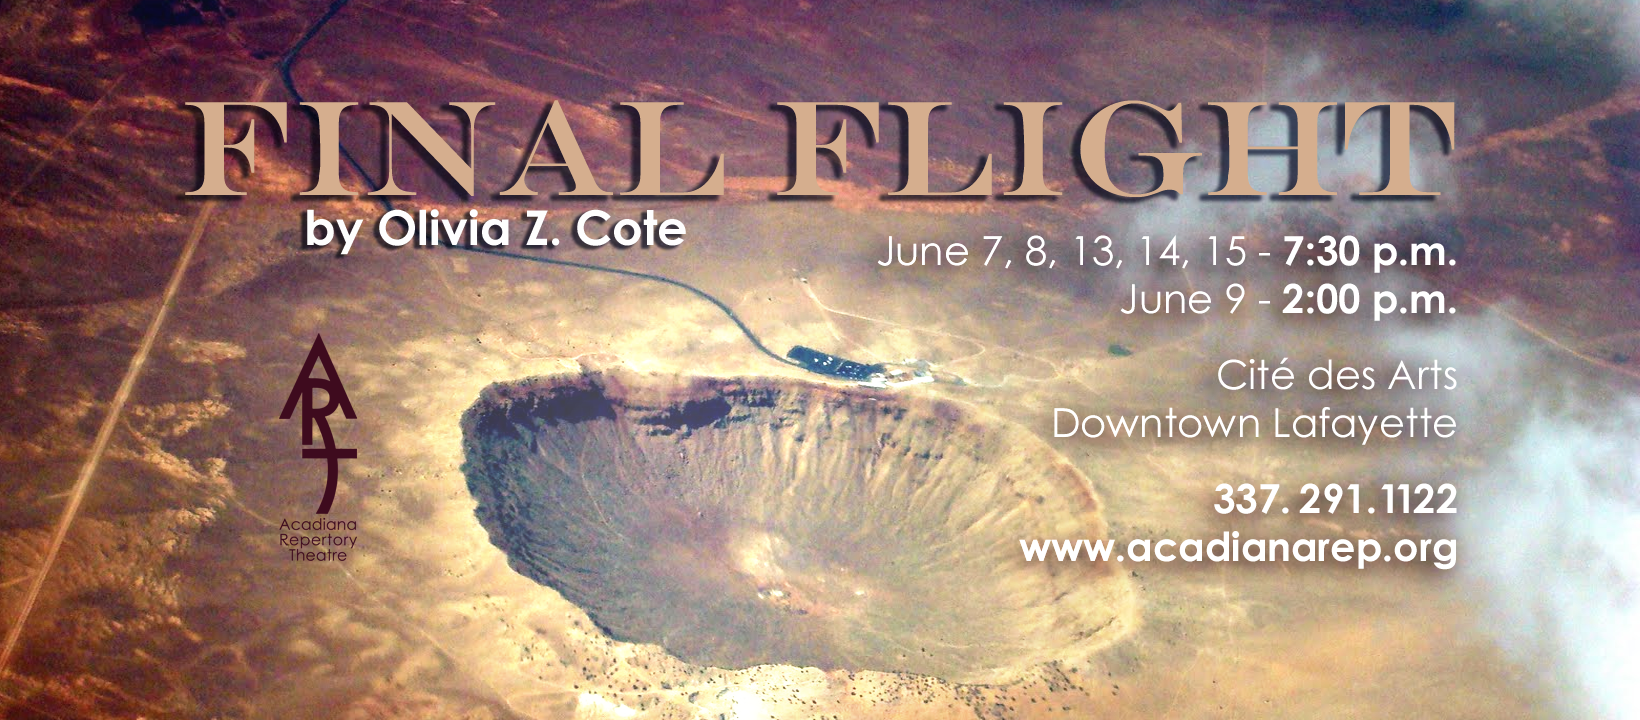 Final Flight SHOW FB Cover.png